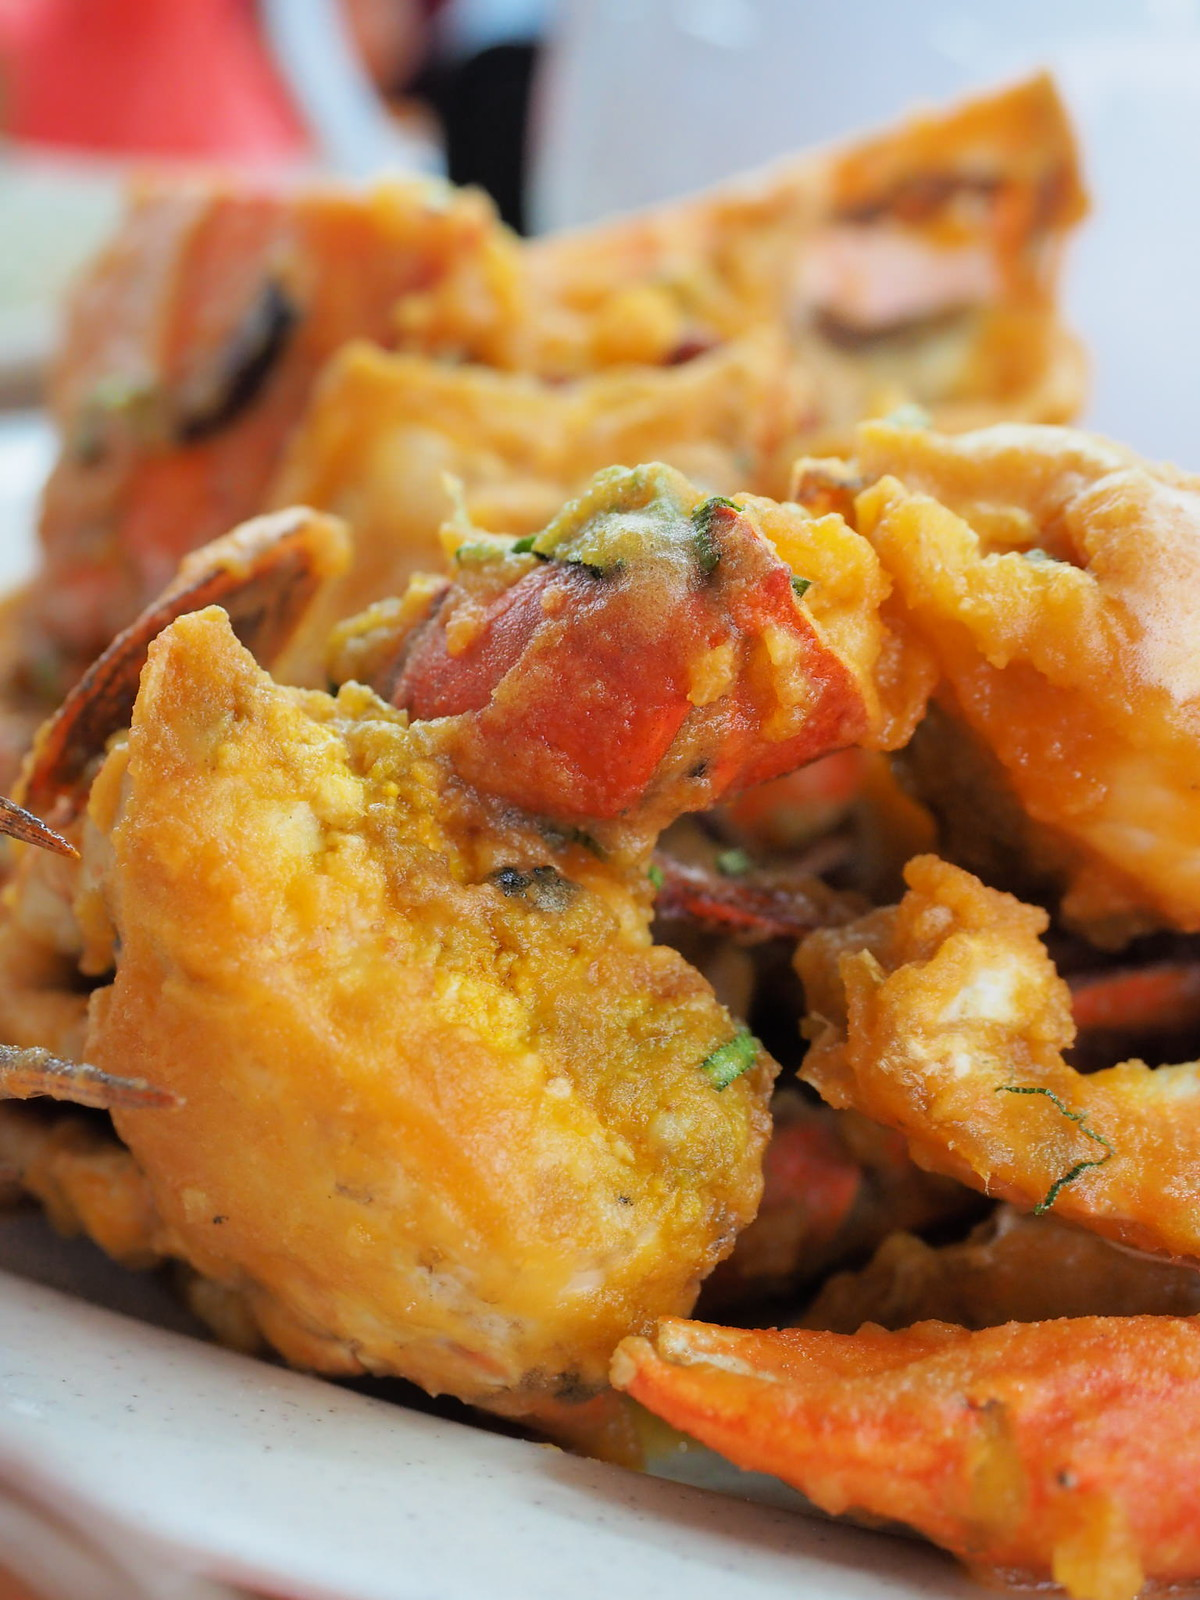 Salted egg crabs at Pangkor Village Seafood, Taman Megah